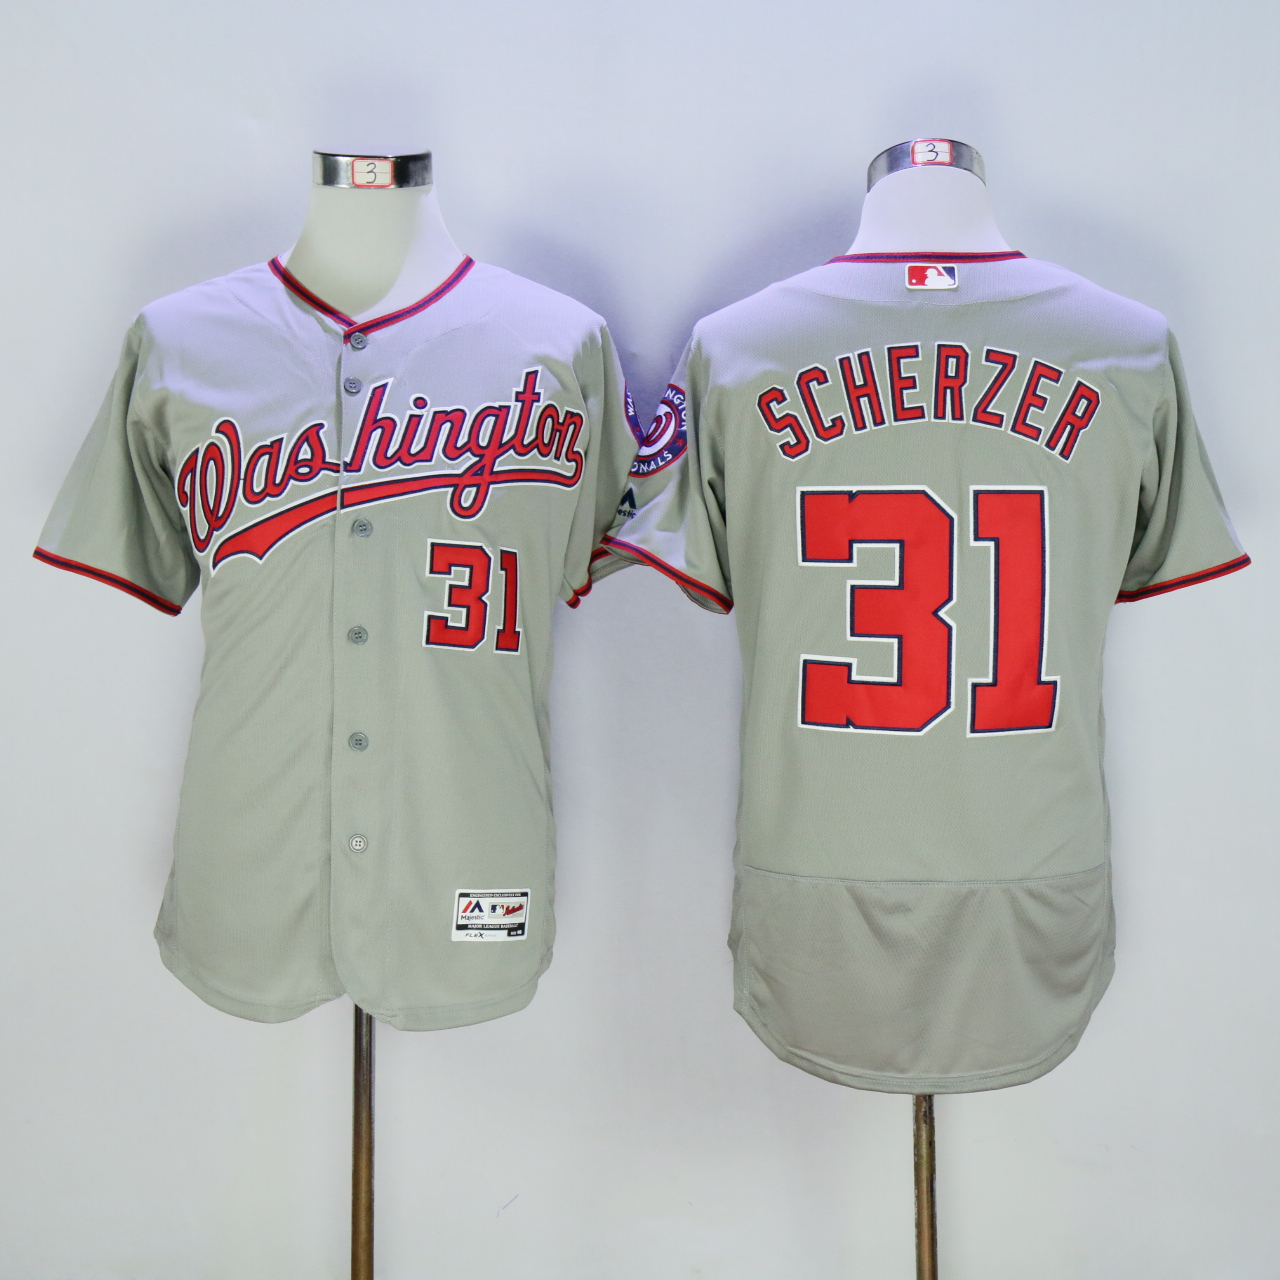 Men Washington Nationals 31 Scherzer Grey MLB Jerseys